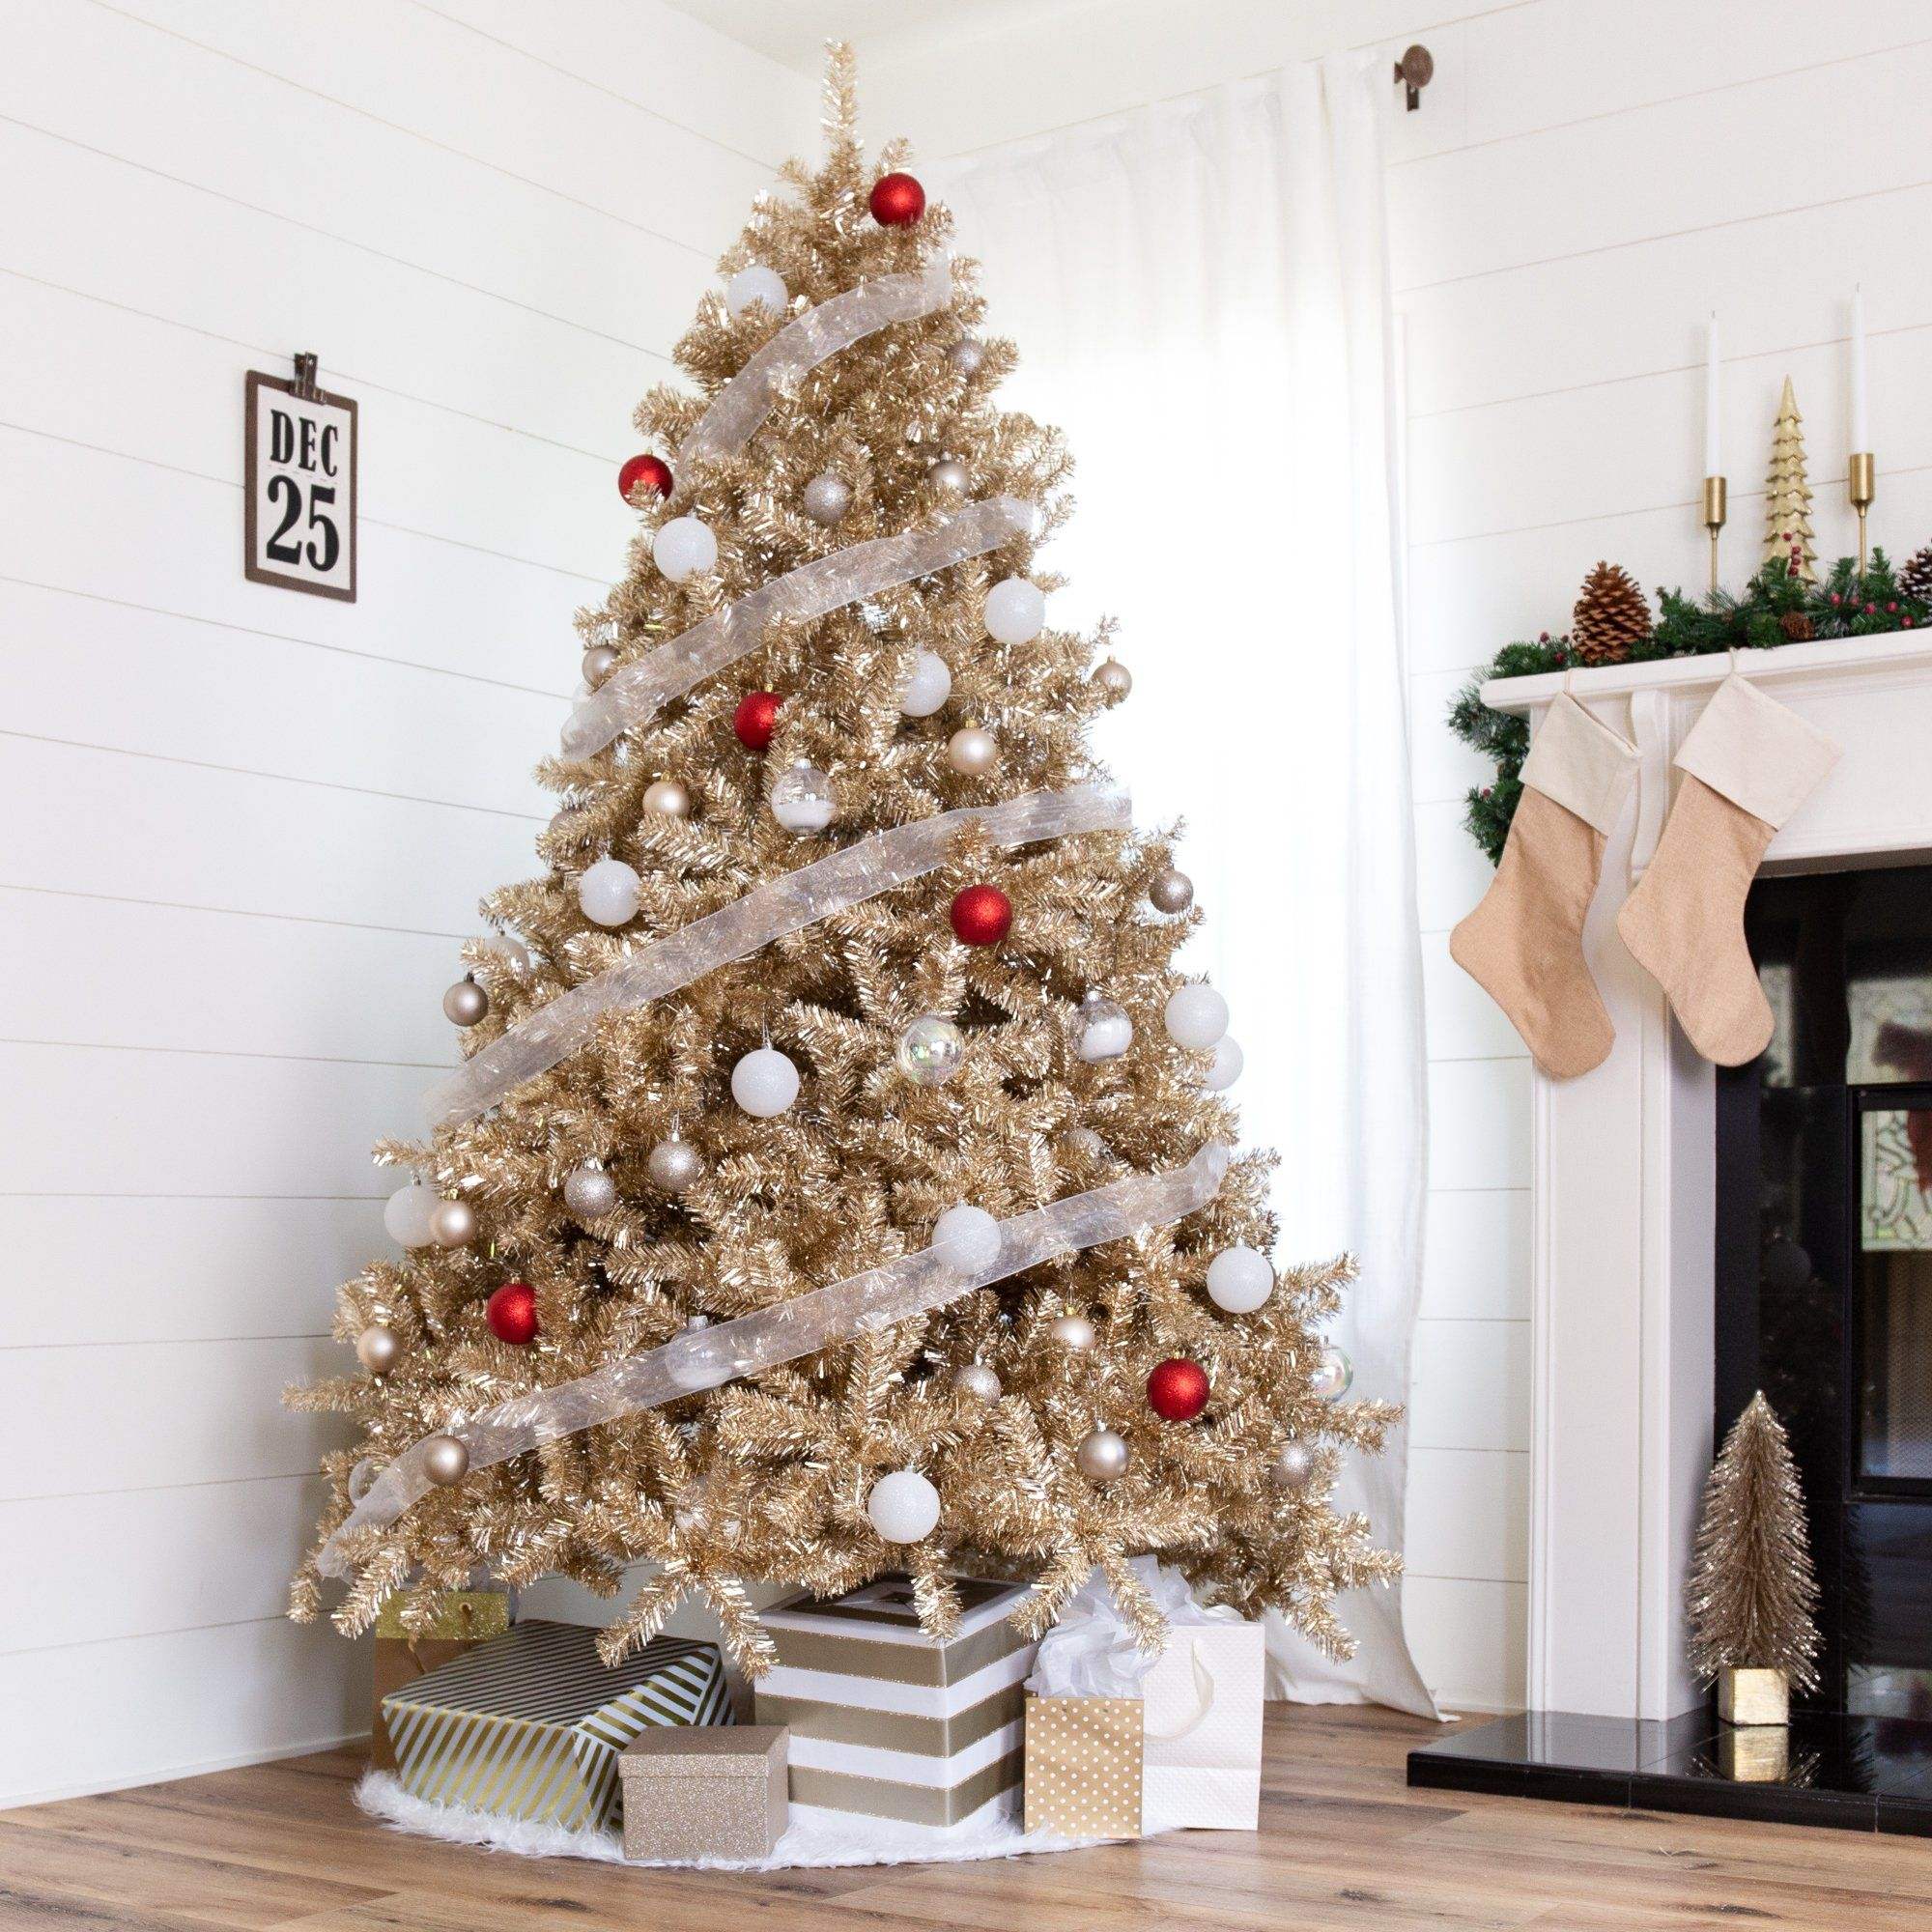 Best Choice Products 7 5ft Artificial Tinsel Christmas Tree W 1 749 Branch Tips Champagne Gold Walmart Com Tinsel Christmas Tree Gold Christmas Tree Colorful Christmas Tree